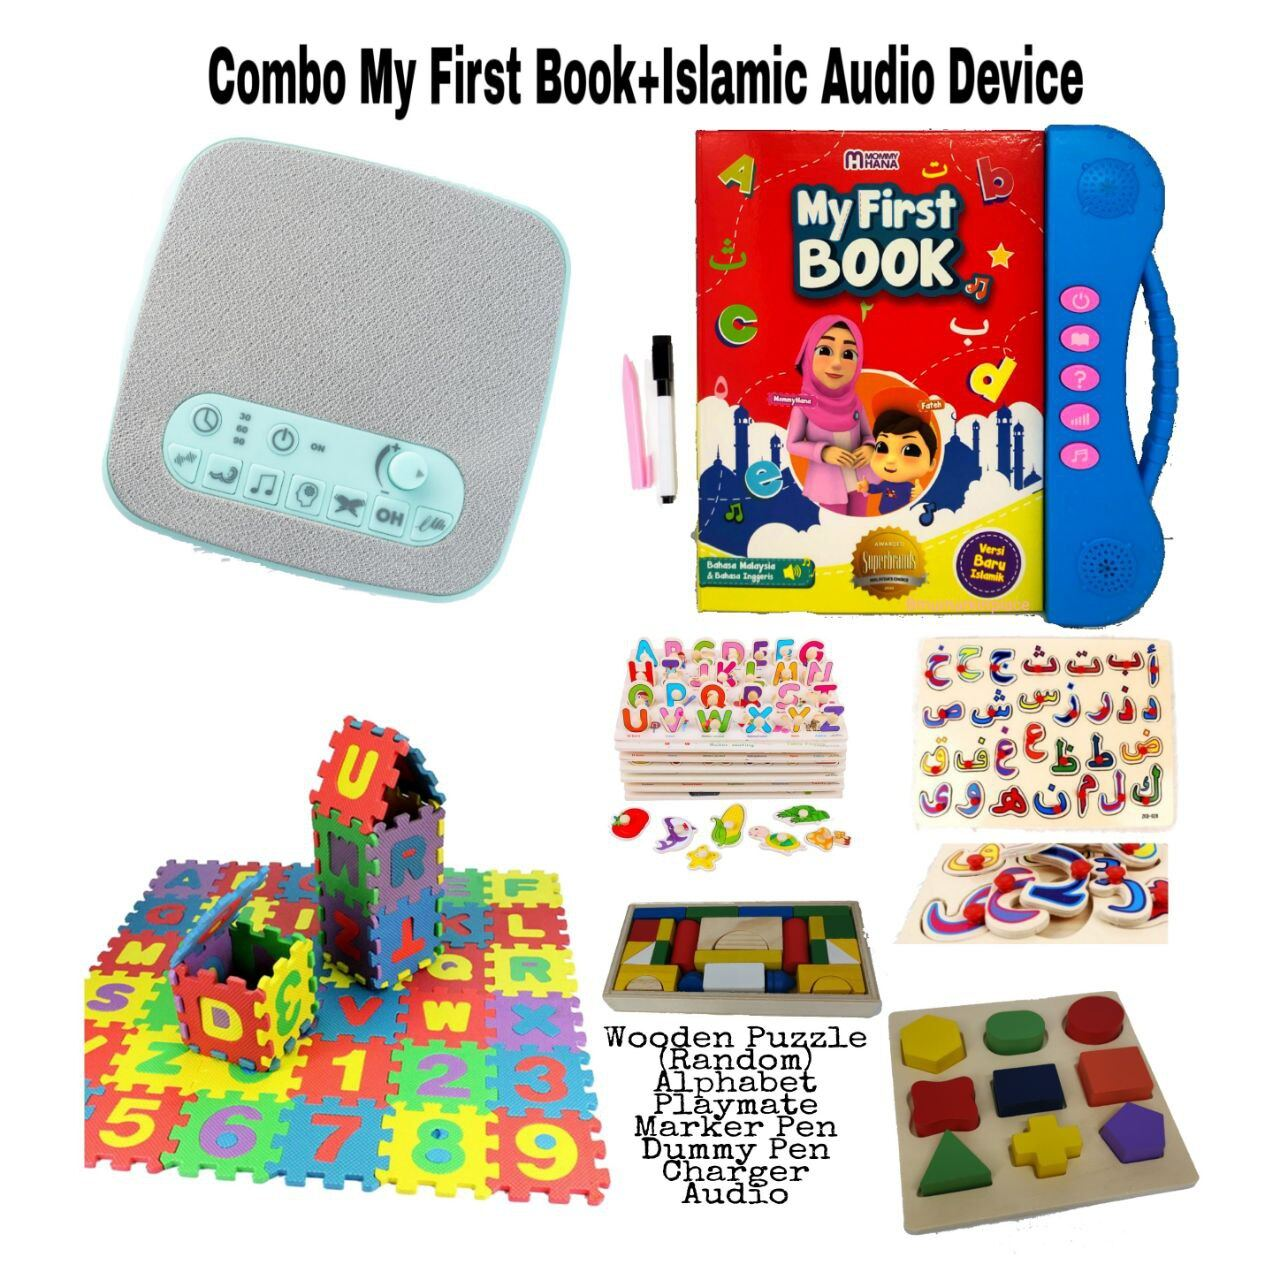 ORIGINAL HQ COMBO MY FIRST BOOK AND ISLAMIC AUDIO DEVICE MOMMY HANA MOMMYHANA (2)